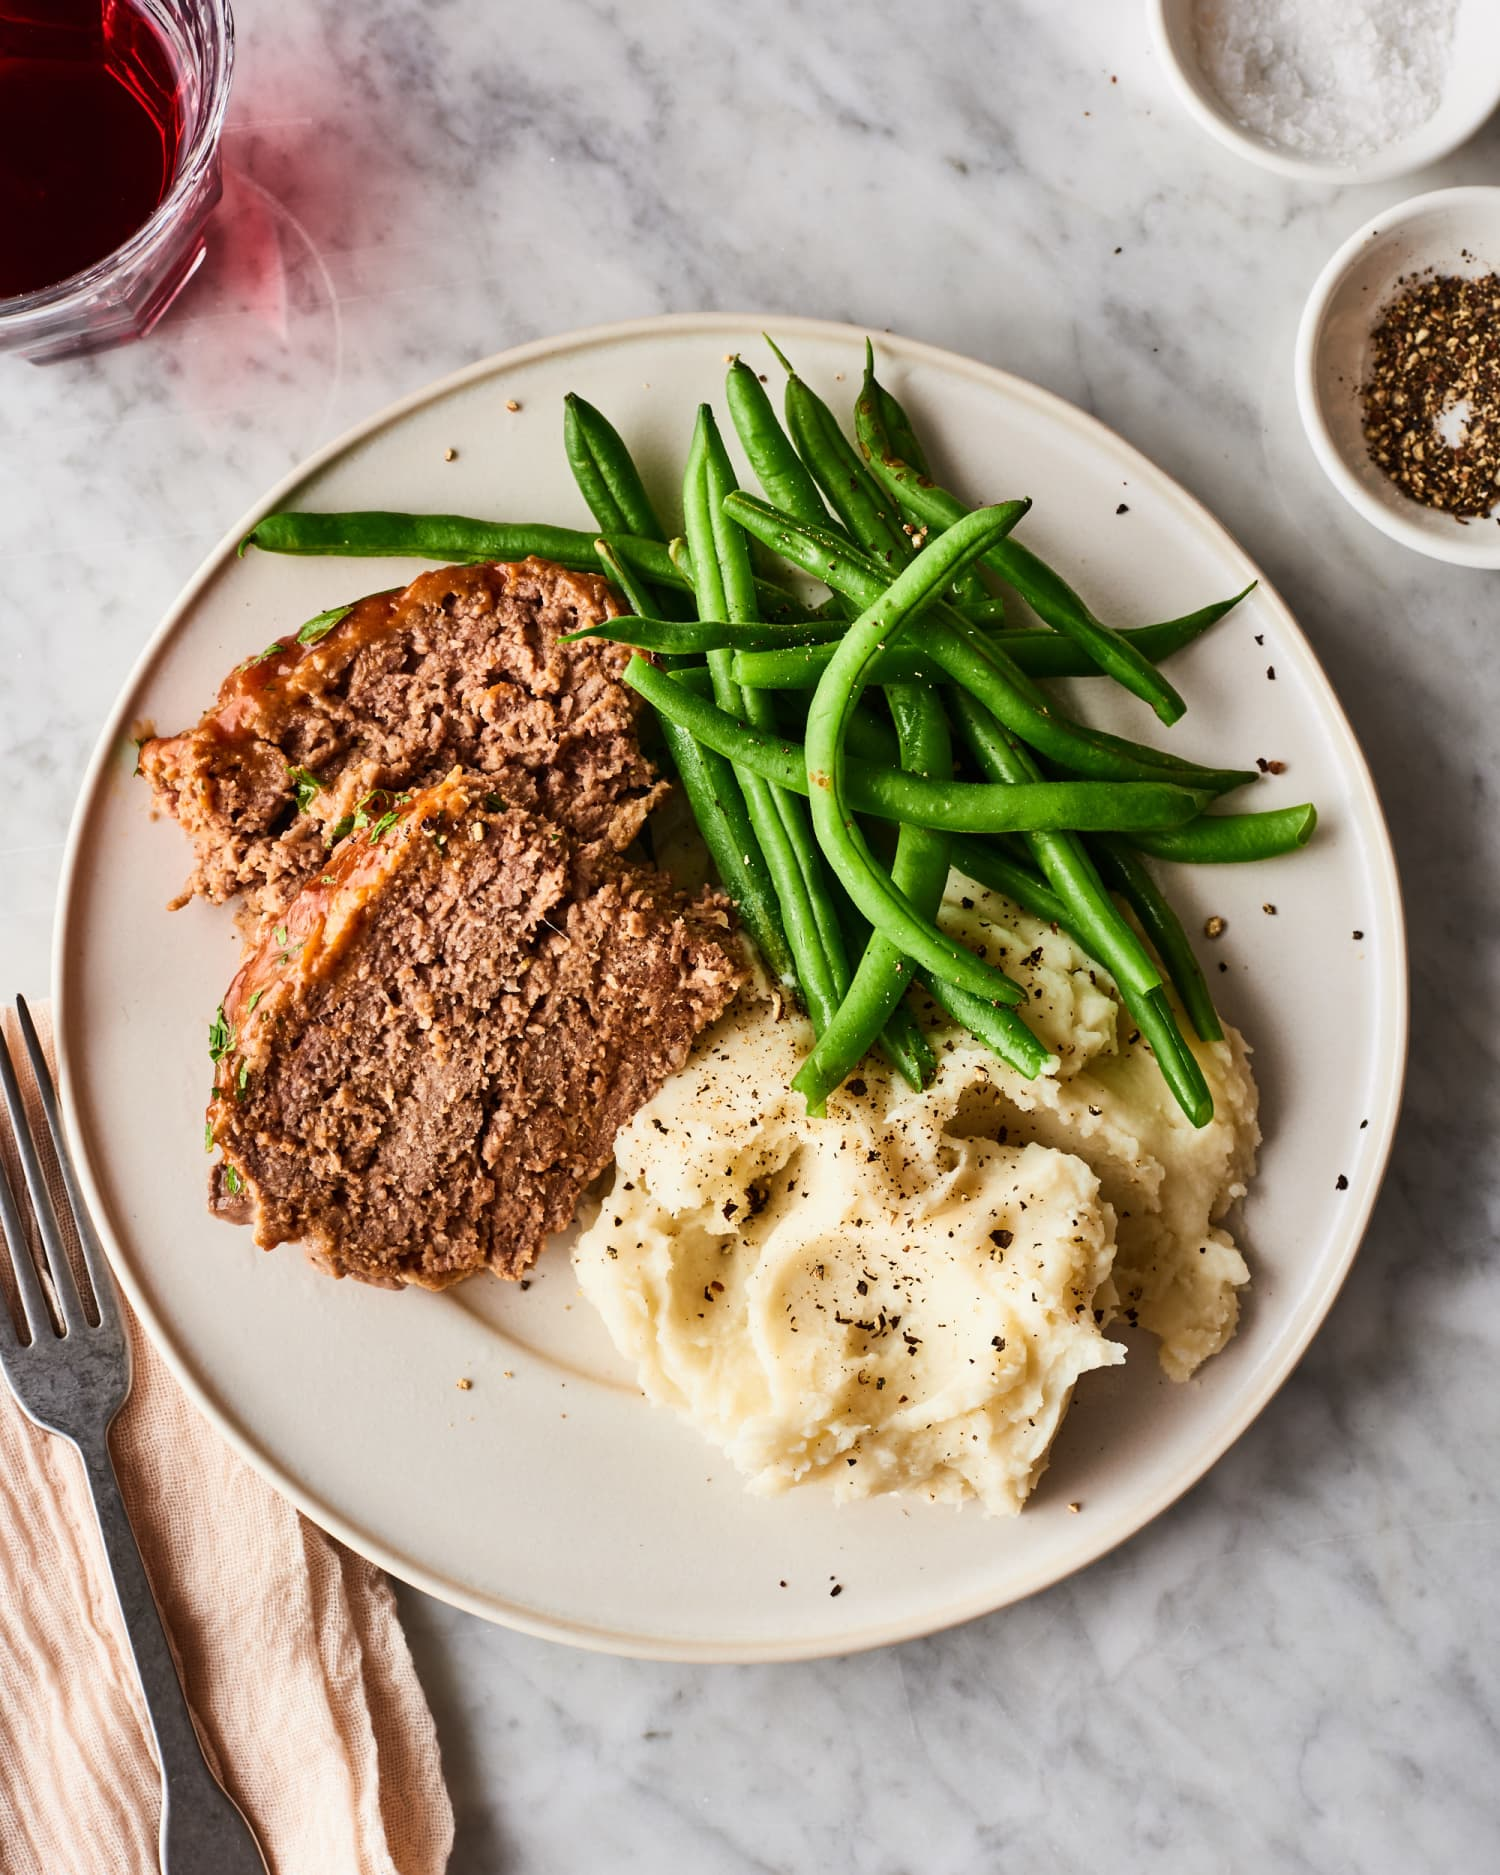 Easy, Melt-in-Your-Mouth Crock-Pot Meatloaf